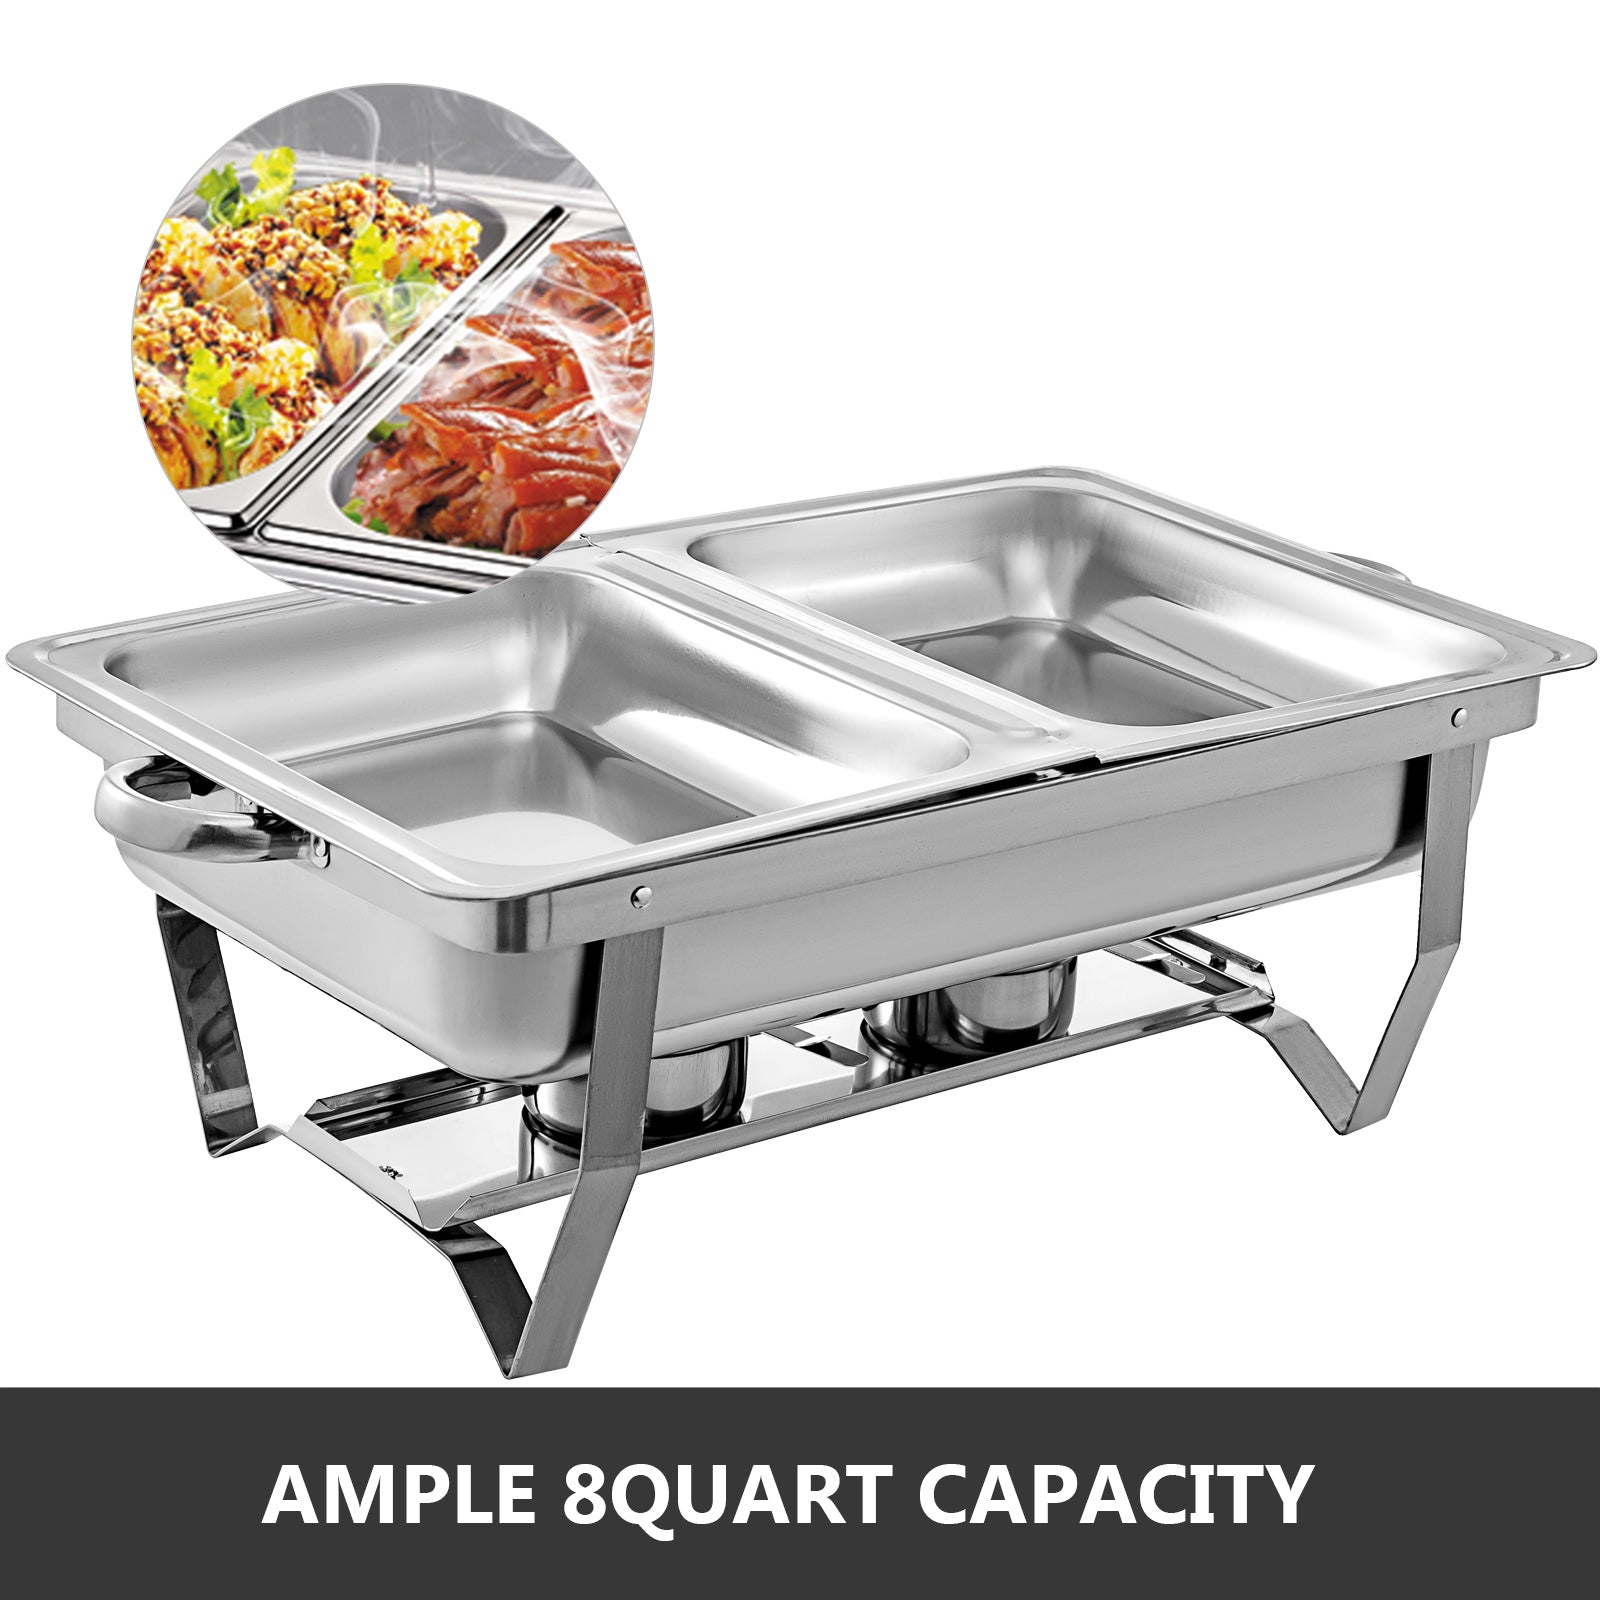 3pcs Chafing Dish Con Tapa Acero Inoxidable Alimentos Calientes